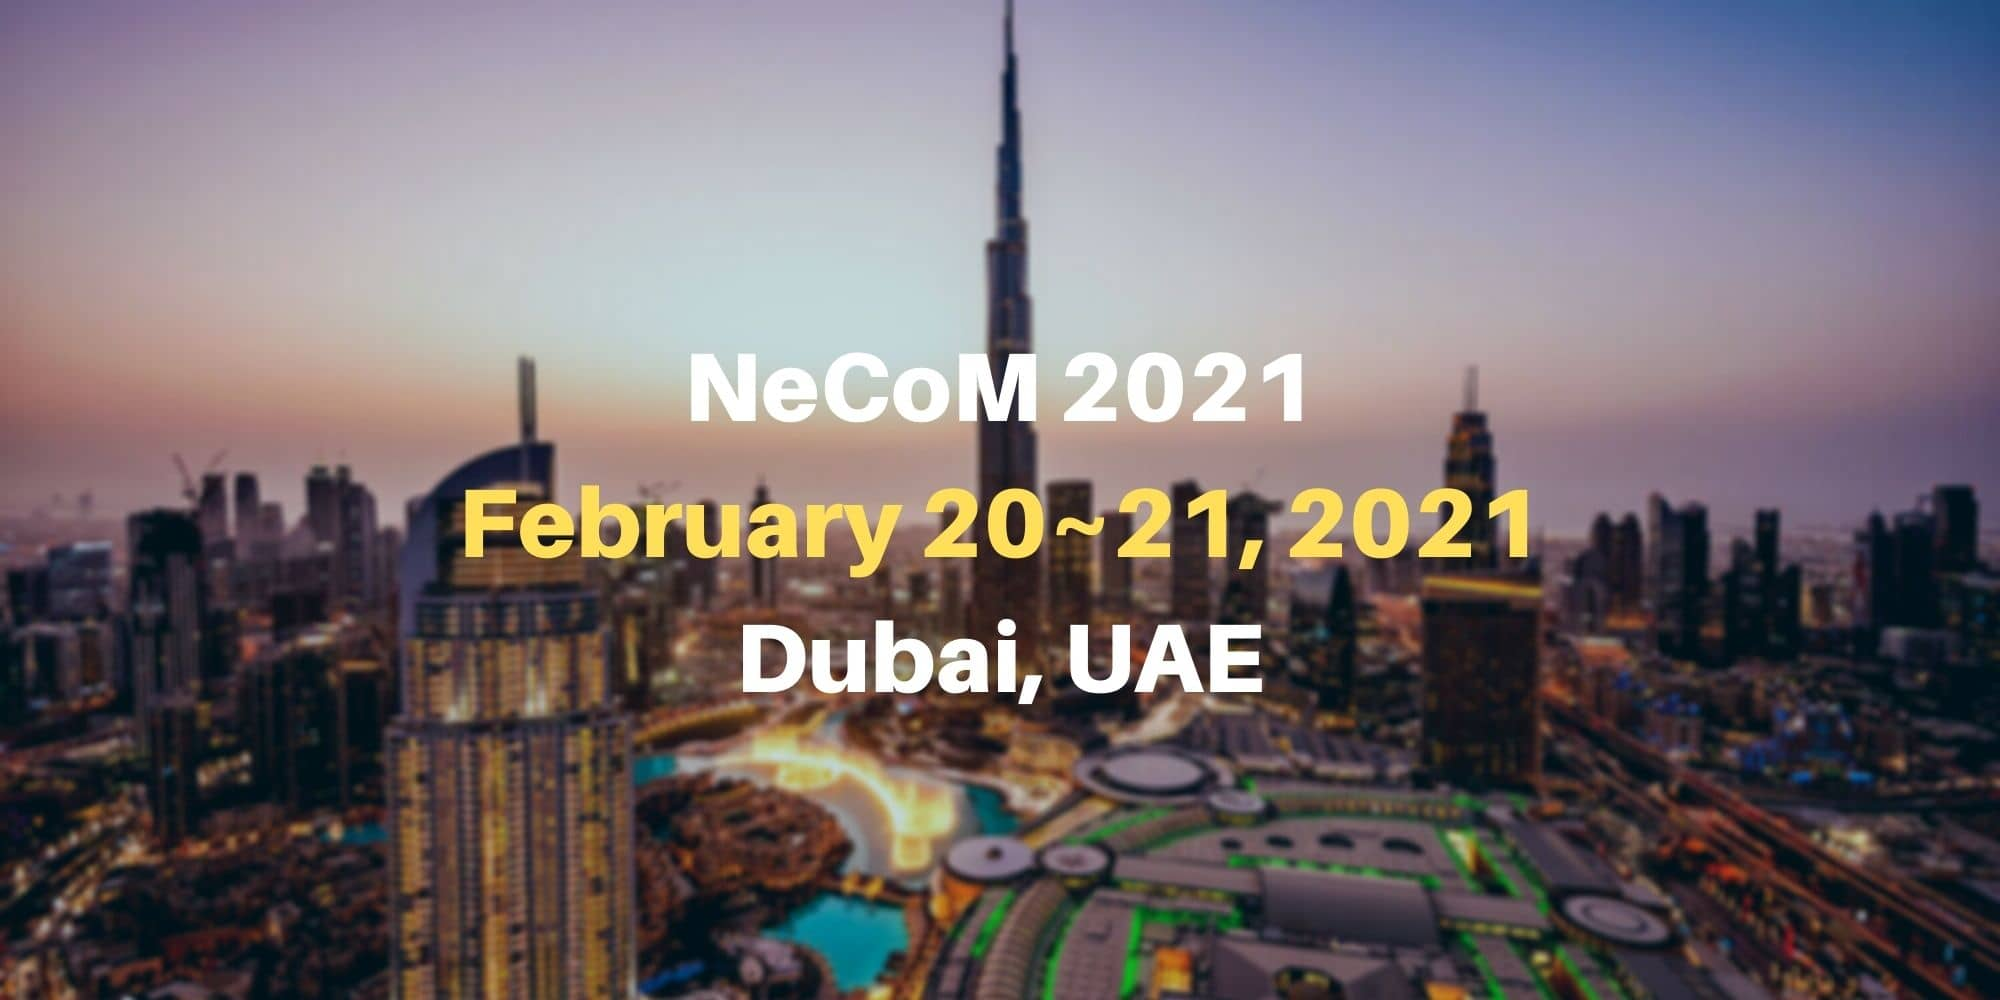 13th International Conference on Networks & Communications (NeCoM 2021)